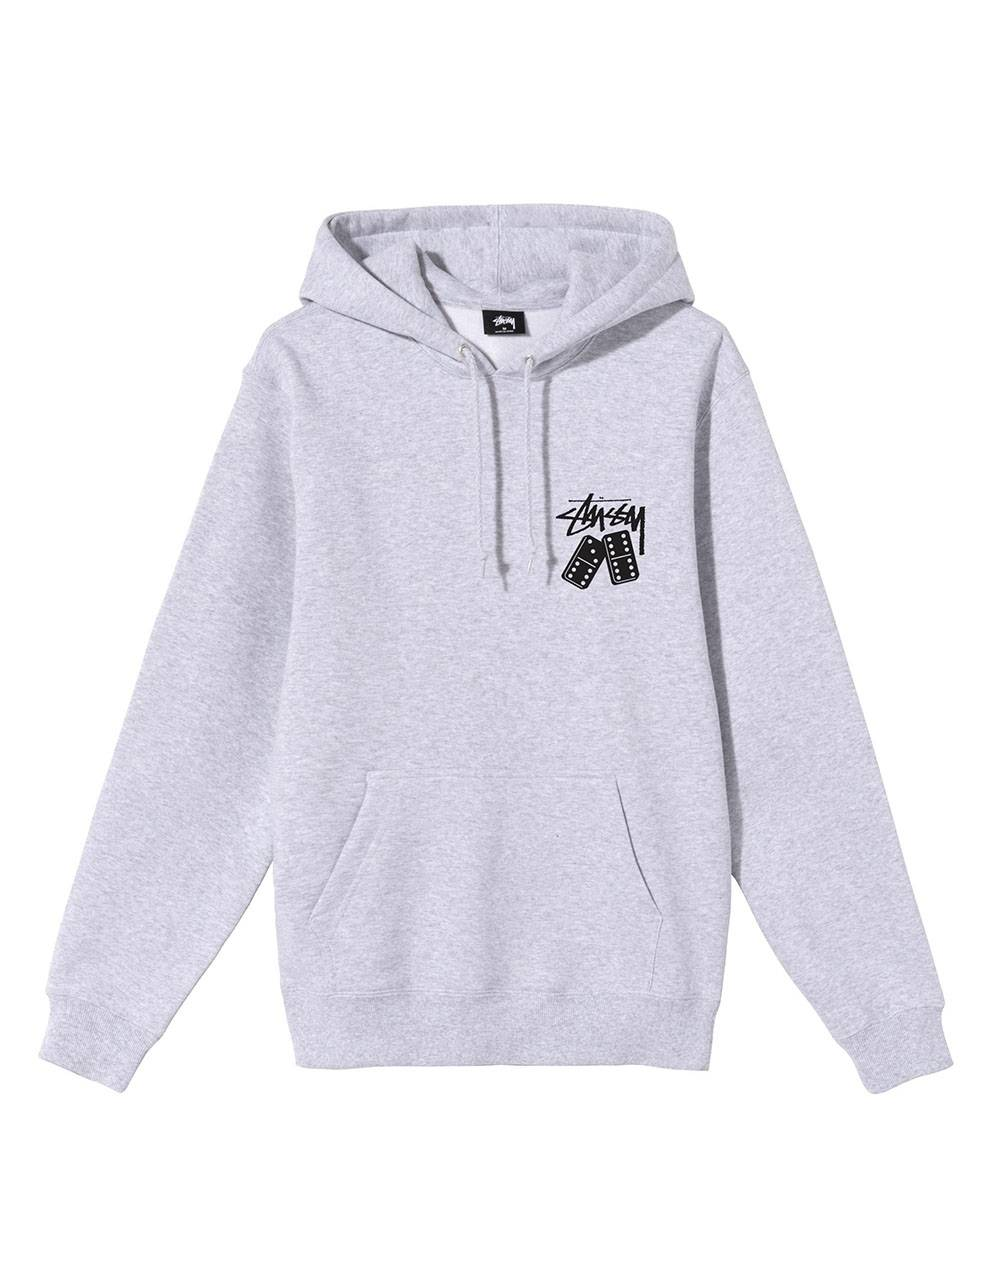 Stussy dominoes hoodie - ash heather Stussy Sweater 119,00 €